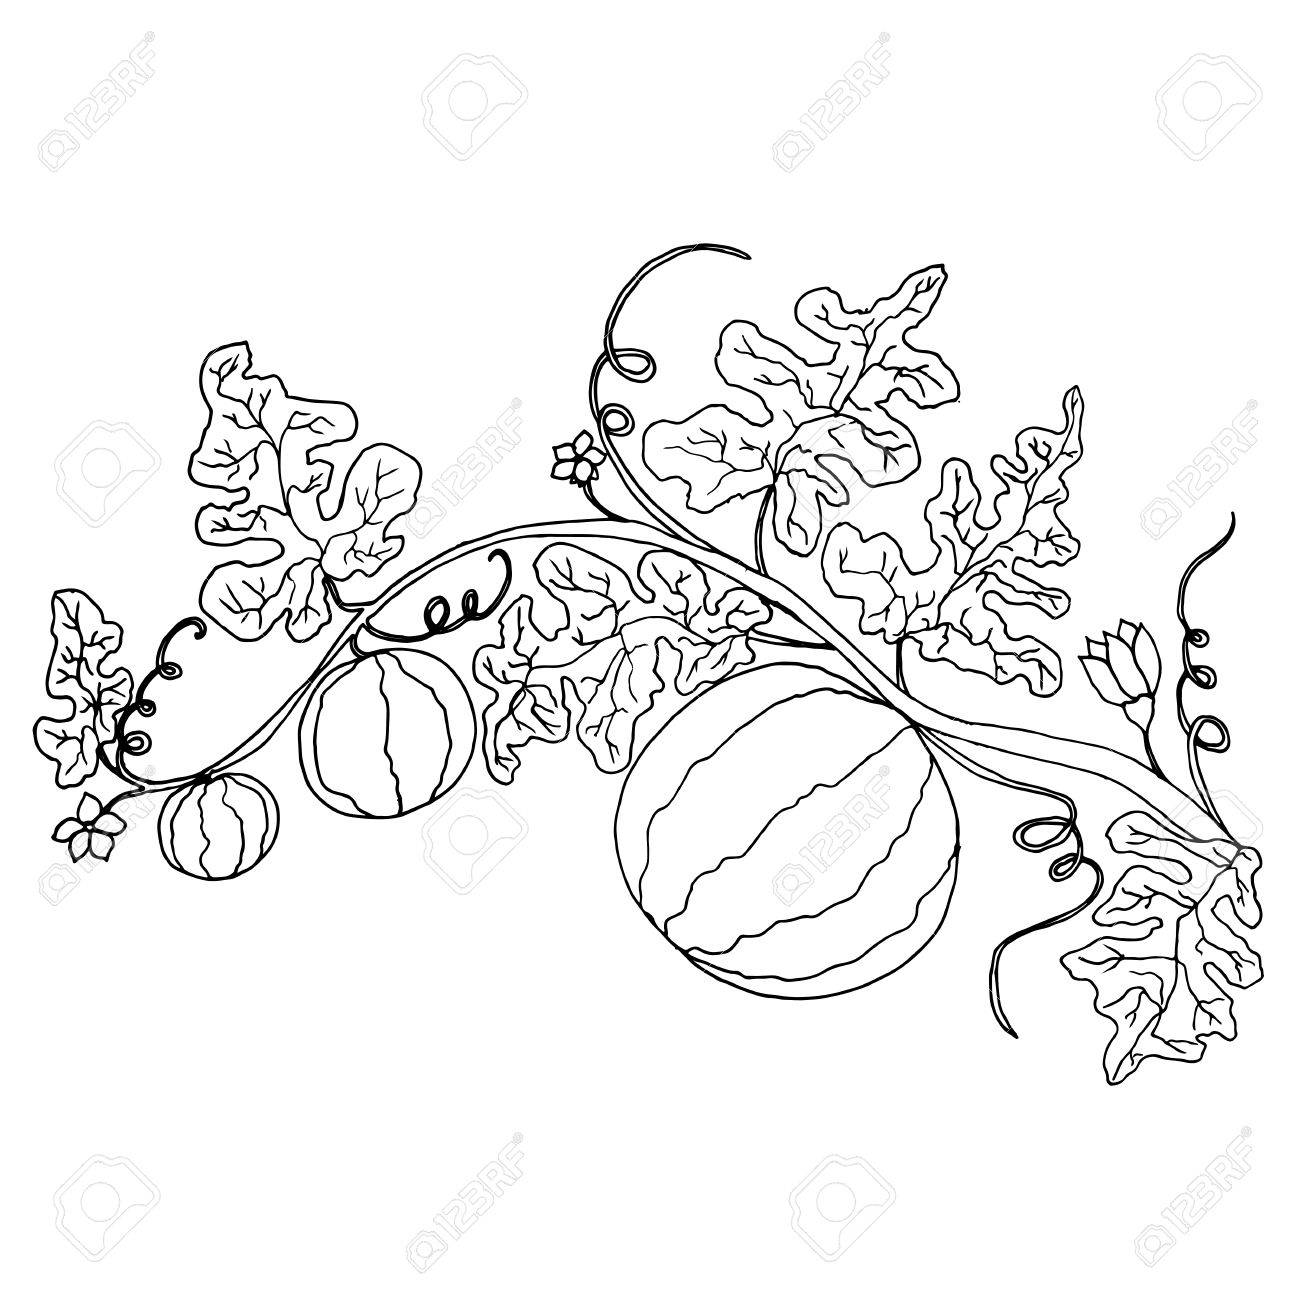 Cartoon Black And White Watermelon In Foliage And Flowers Isolated